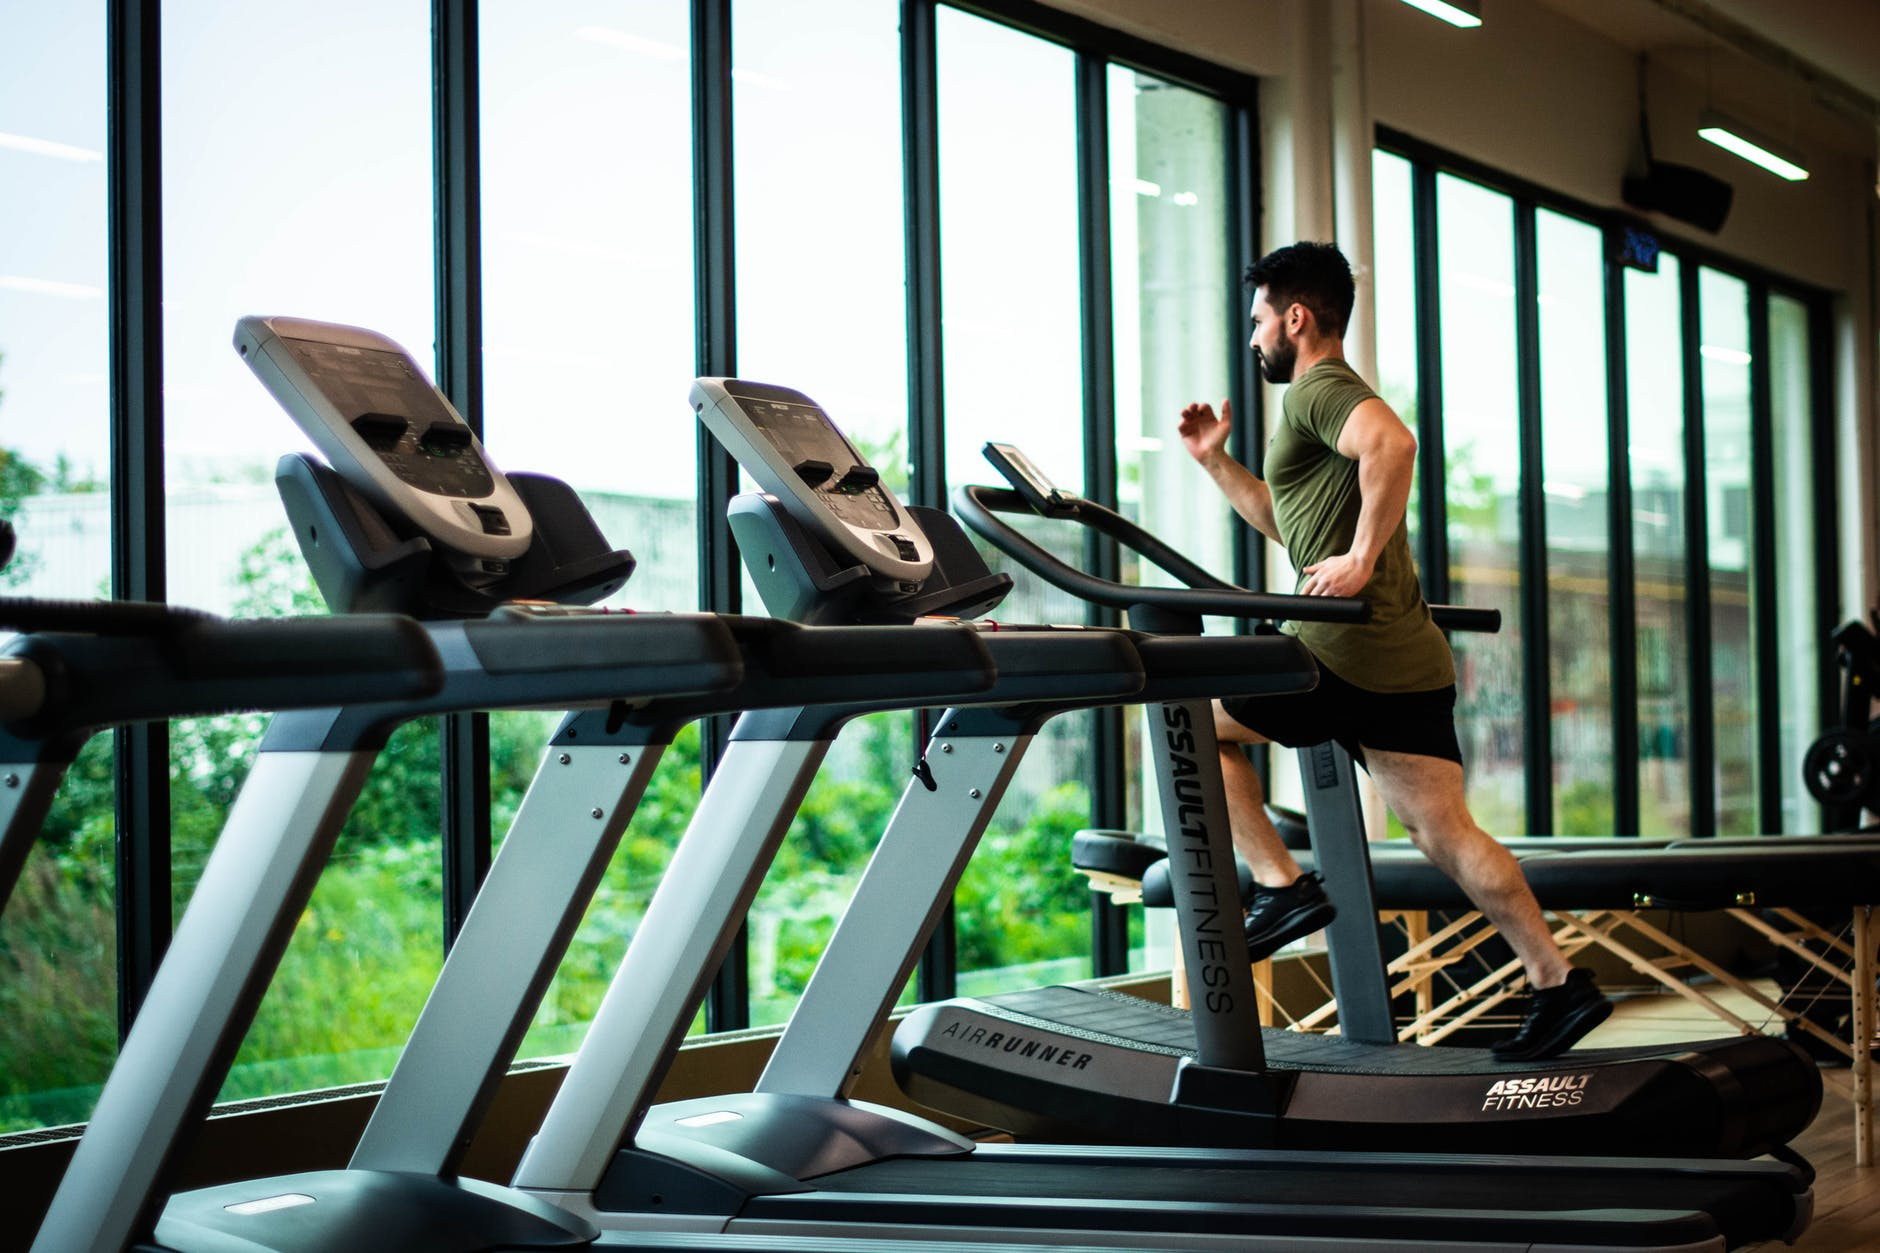 What Is Compulsive Exercise